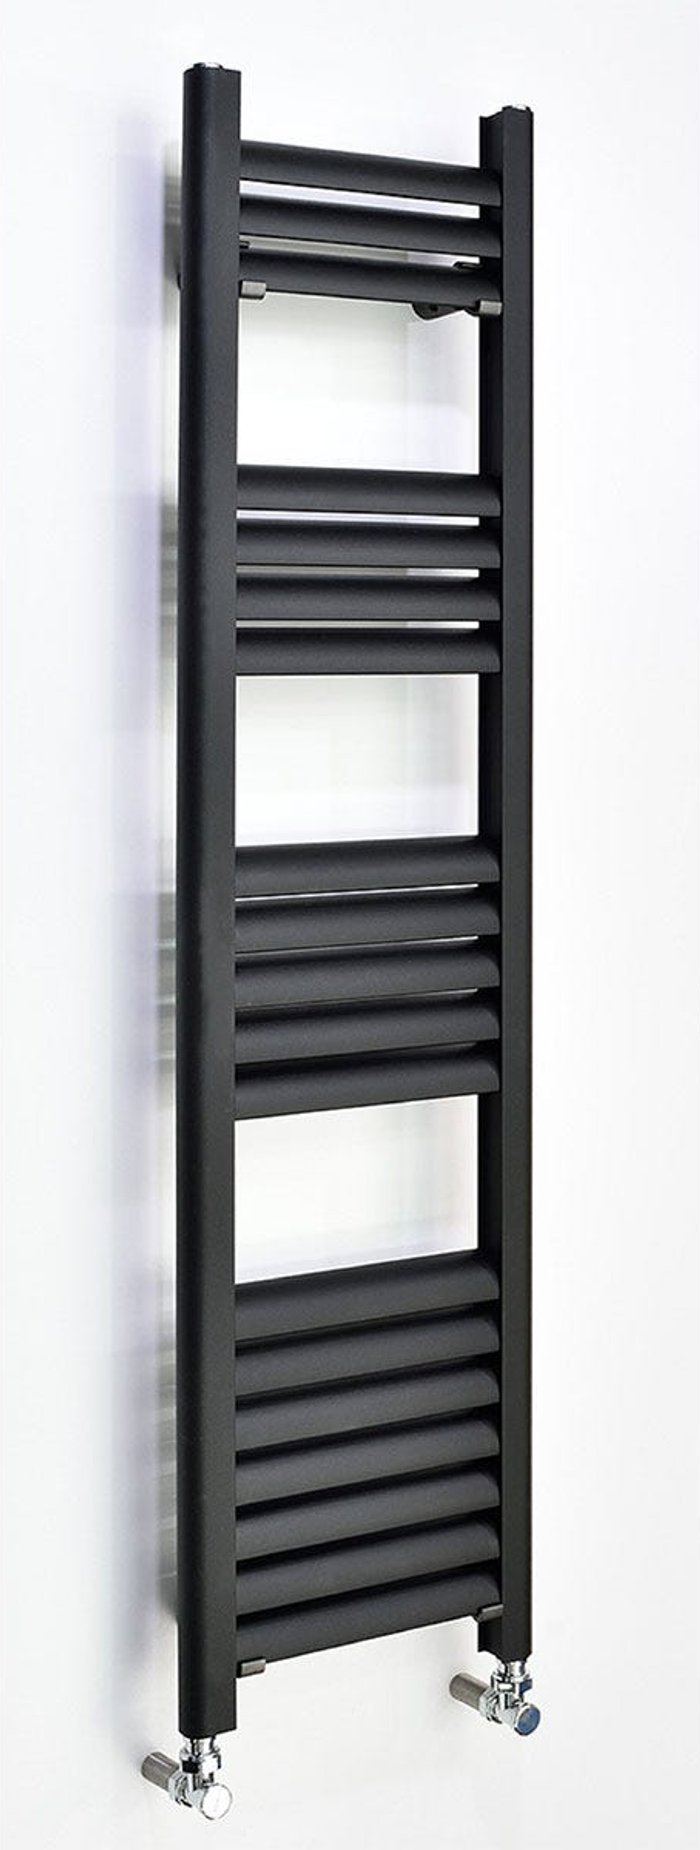 Towelrads Towelrads Accuro Korle Champagne 1000mm x 500mm Aluminium T/Warmer - Anthracite